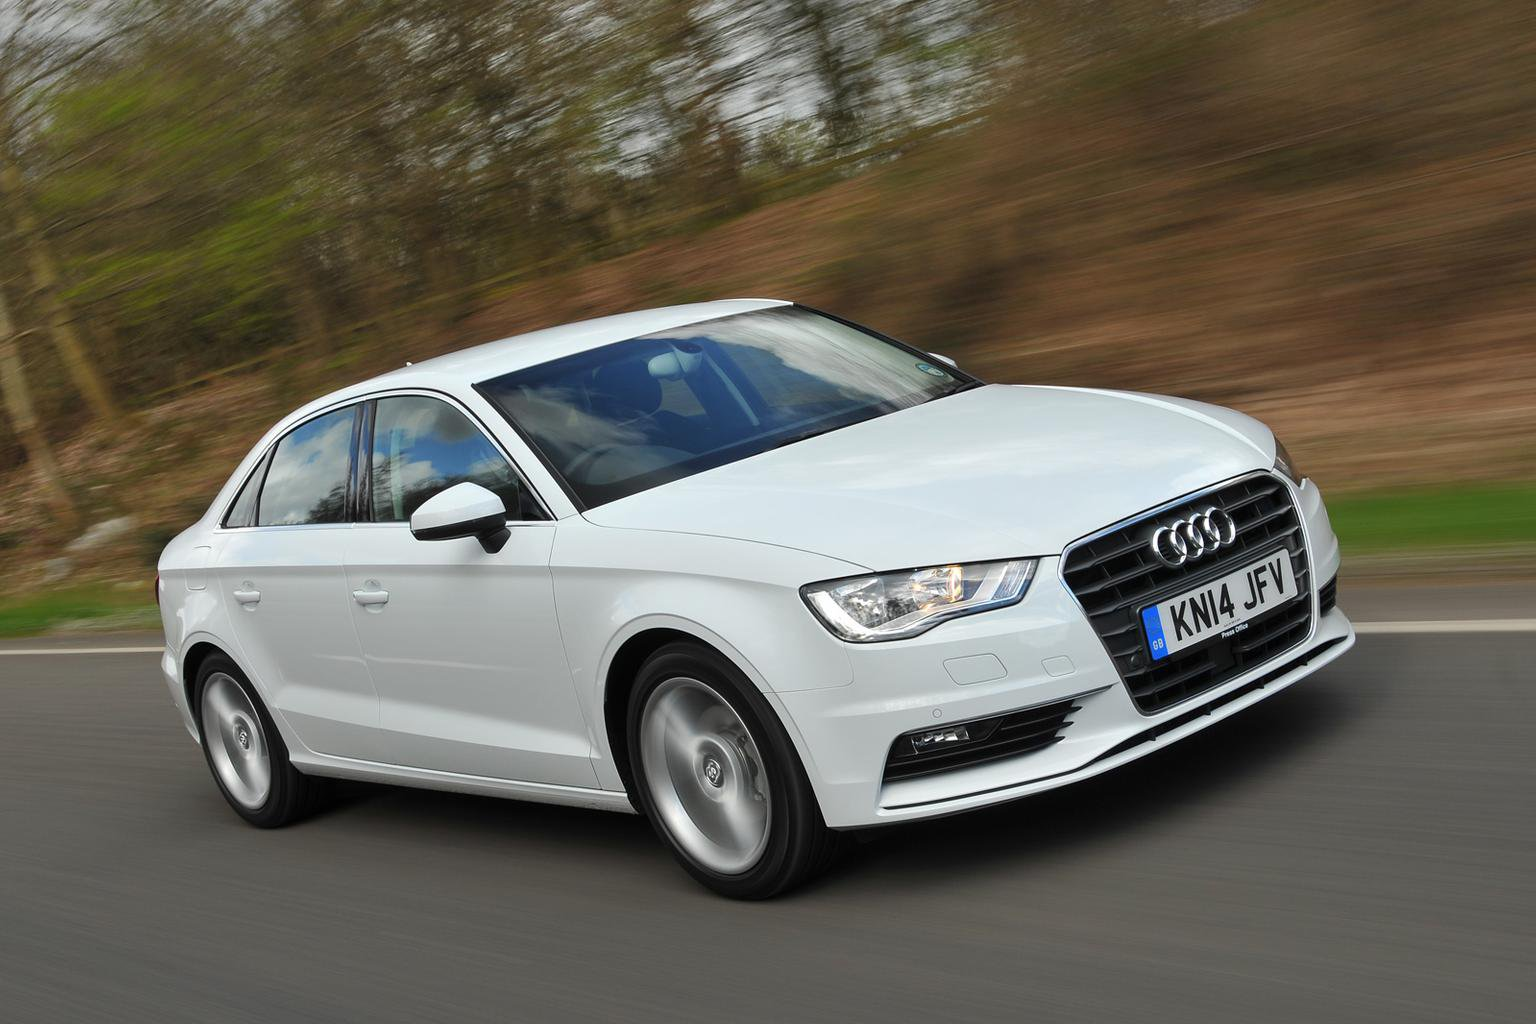 Our cars: Audi A3 Saloon and Mini Cooper